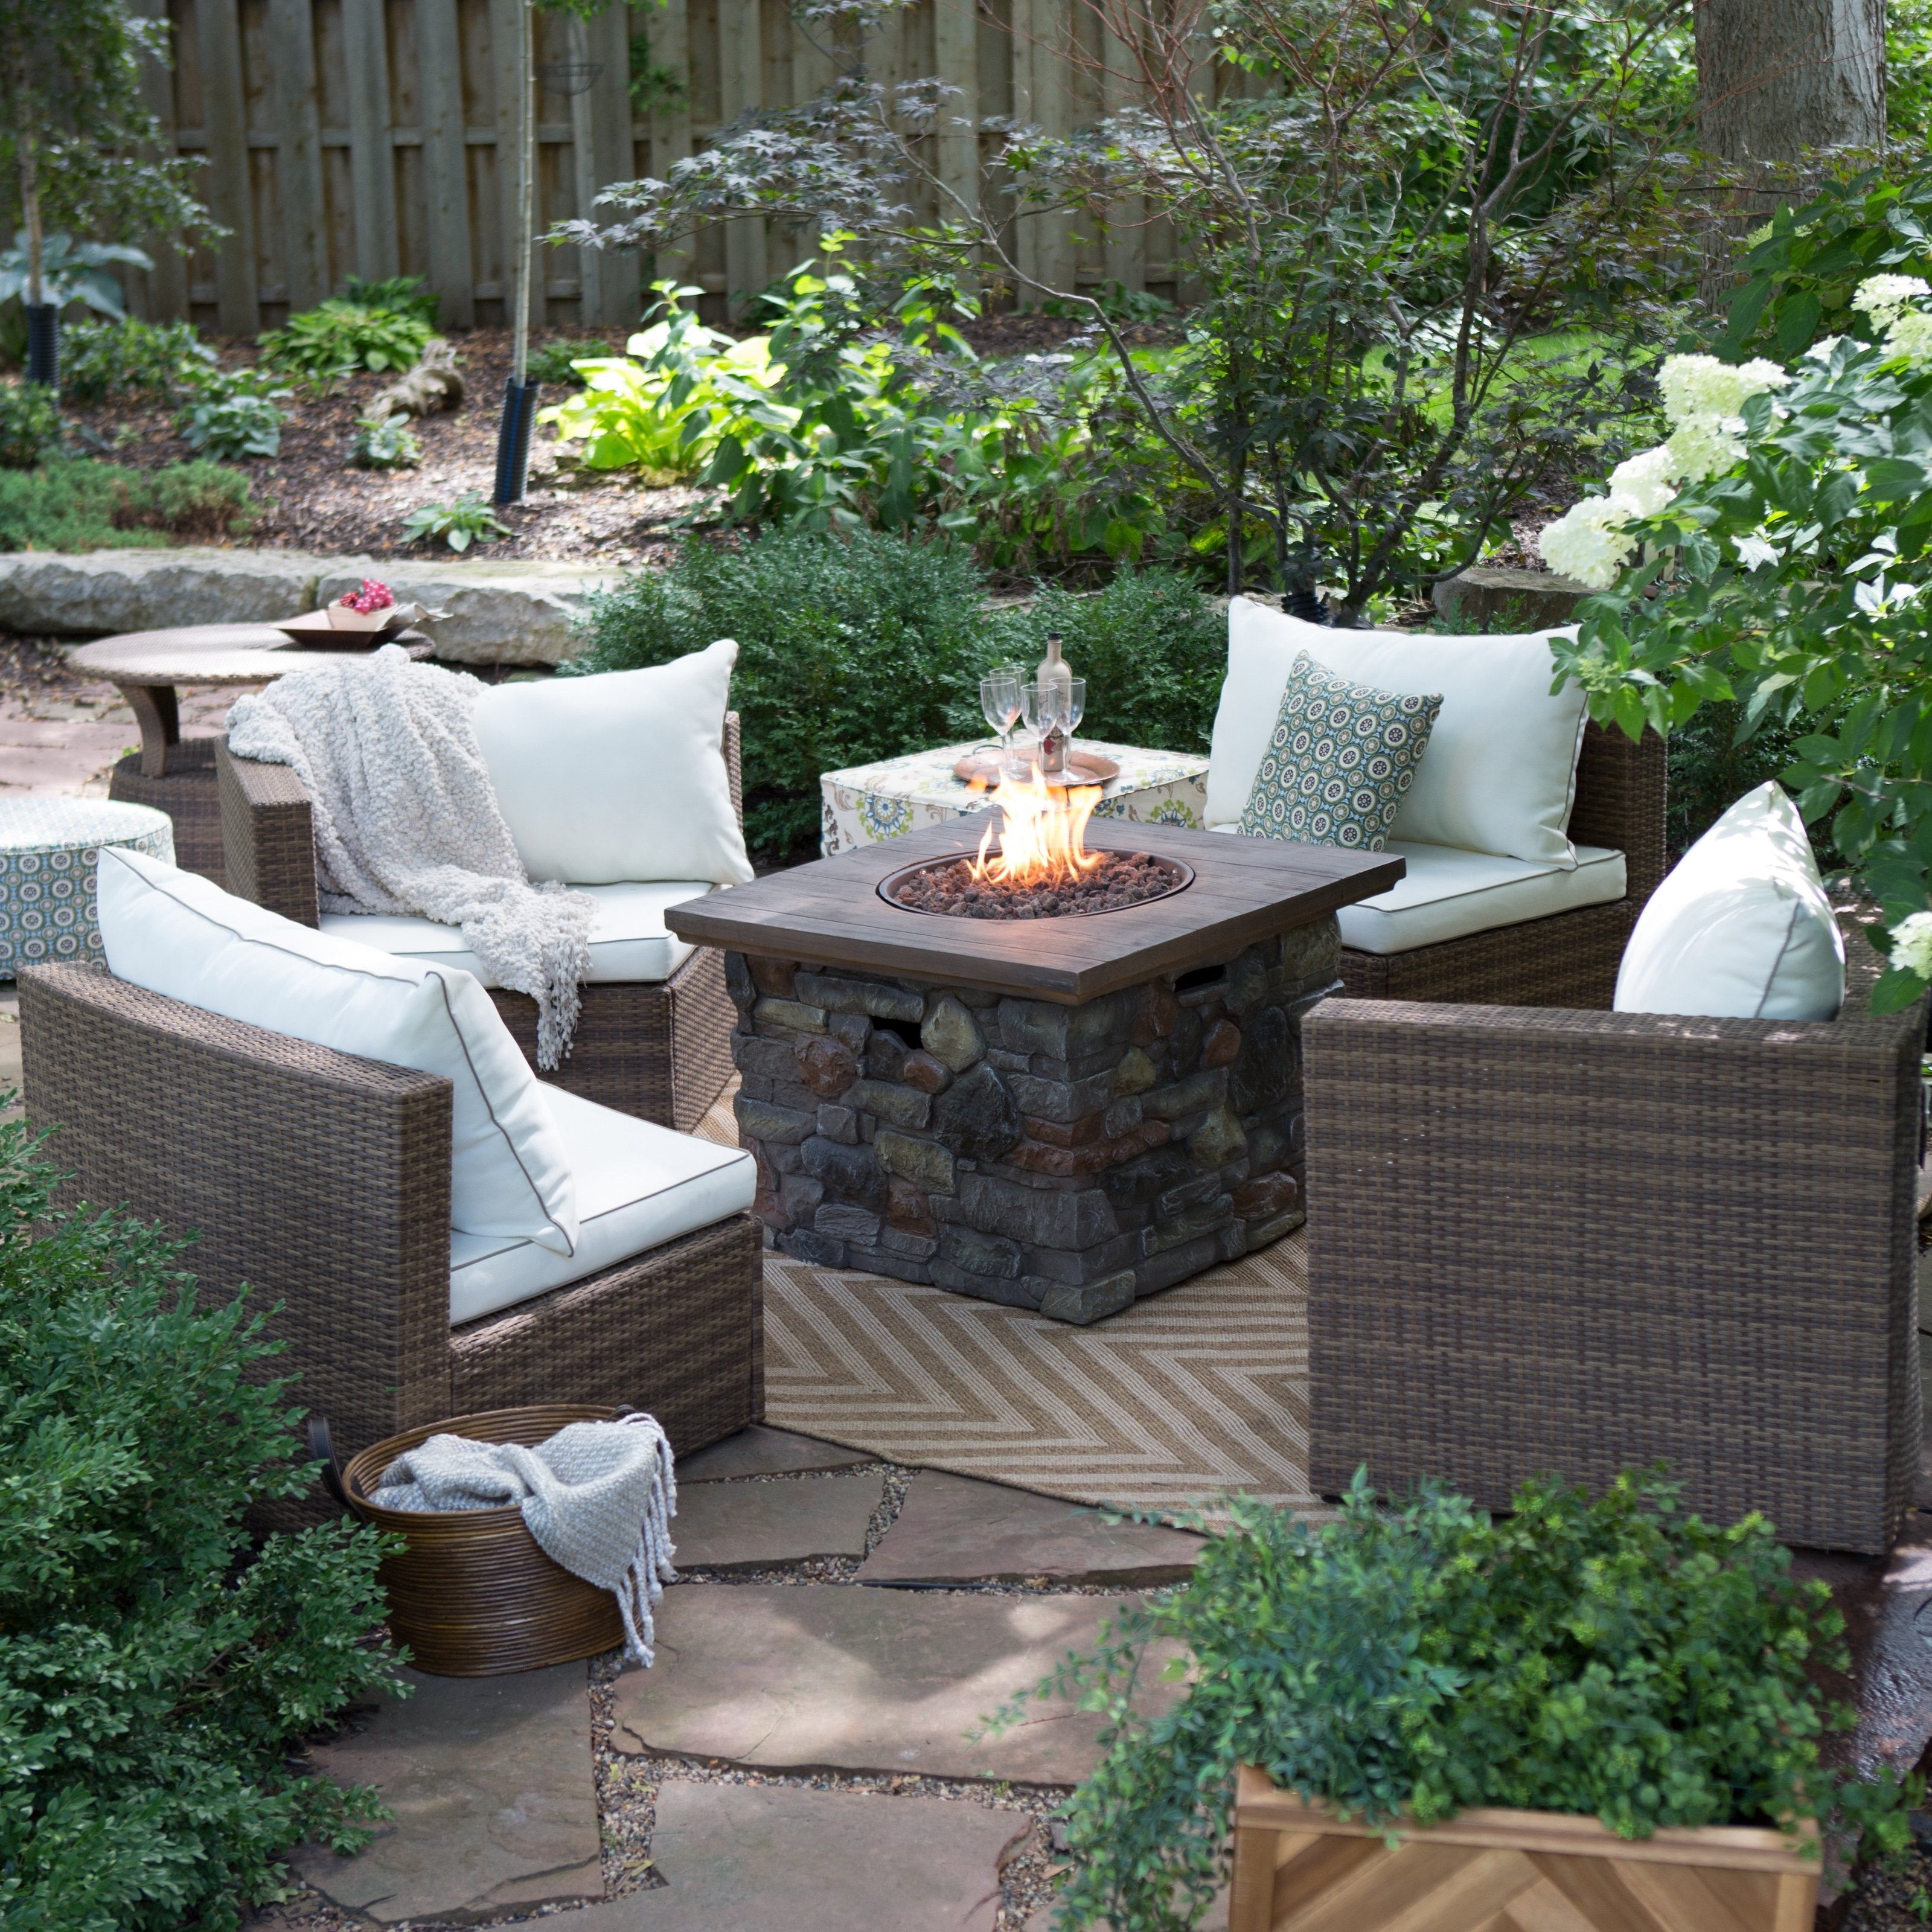 Skill Fire Pit Conversation Sets Decoration Firerock Smokeless Regarding Trendy Patio Conversation Sets With Fire Pit (View 18 of 20)